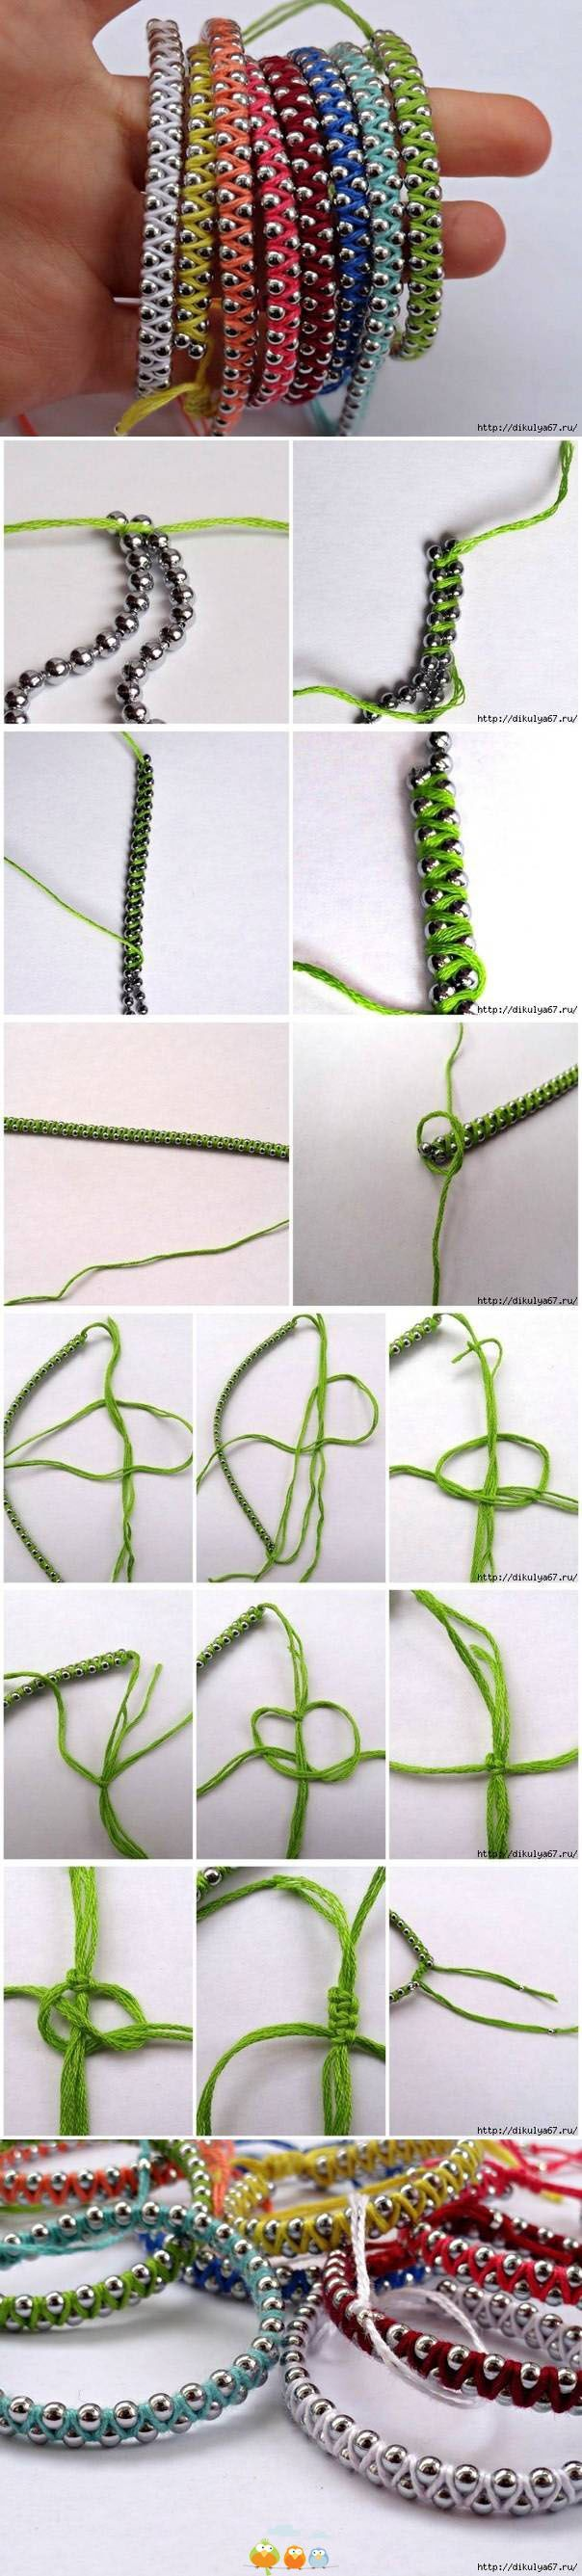 DIY bracelets Wow, this an awesome use of your #paracord